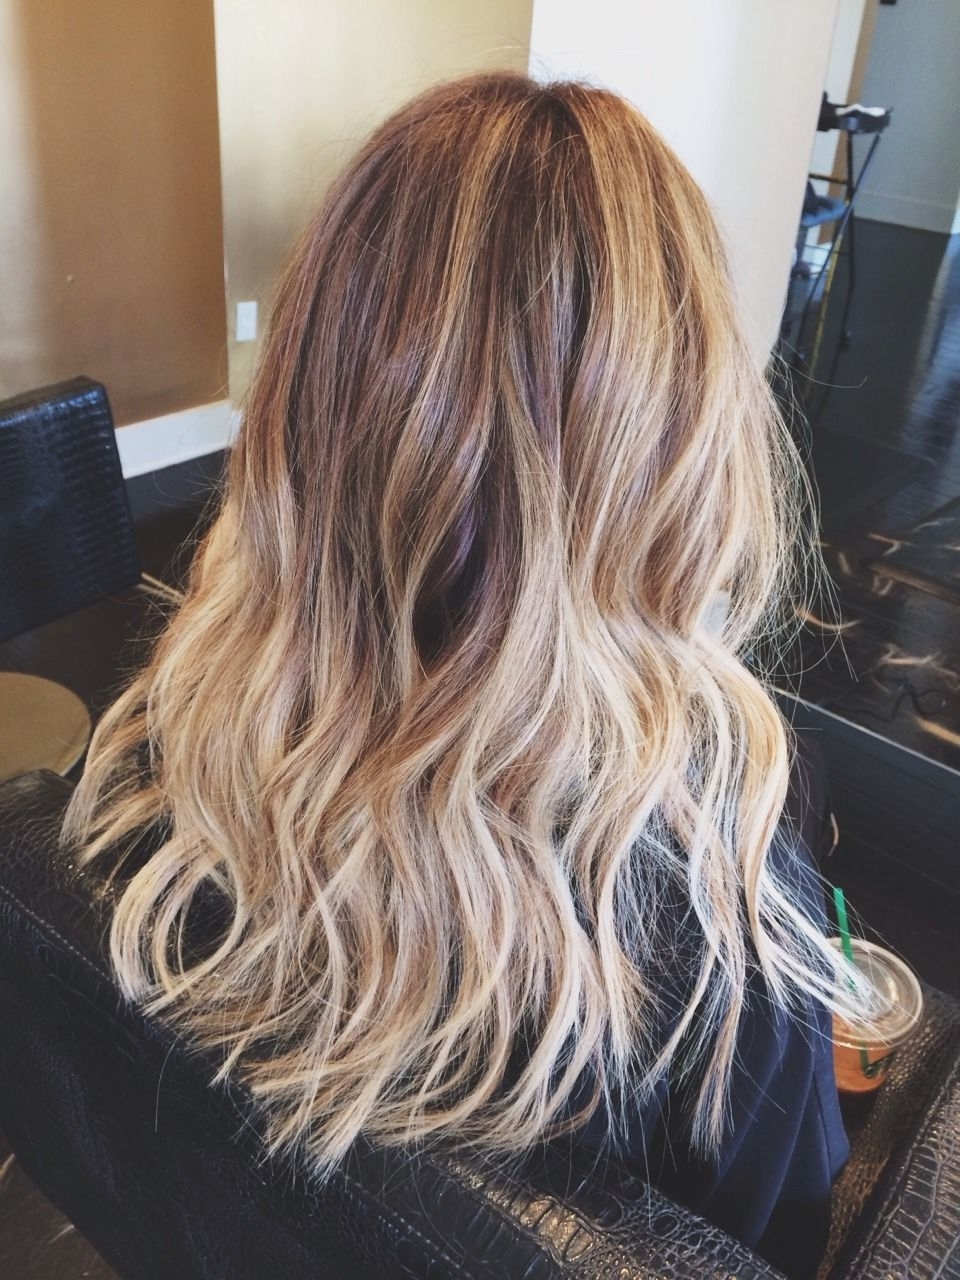 Favorite Honey Hued Beach Waves Blonde Hairstyles For My Blonde/light Brown Ombré Hair With Beach Waves (View 9 of 20)